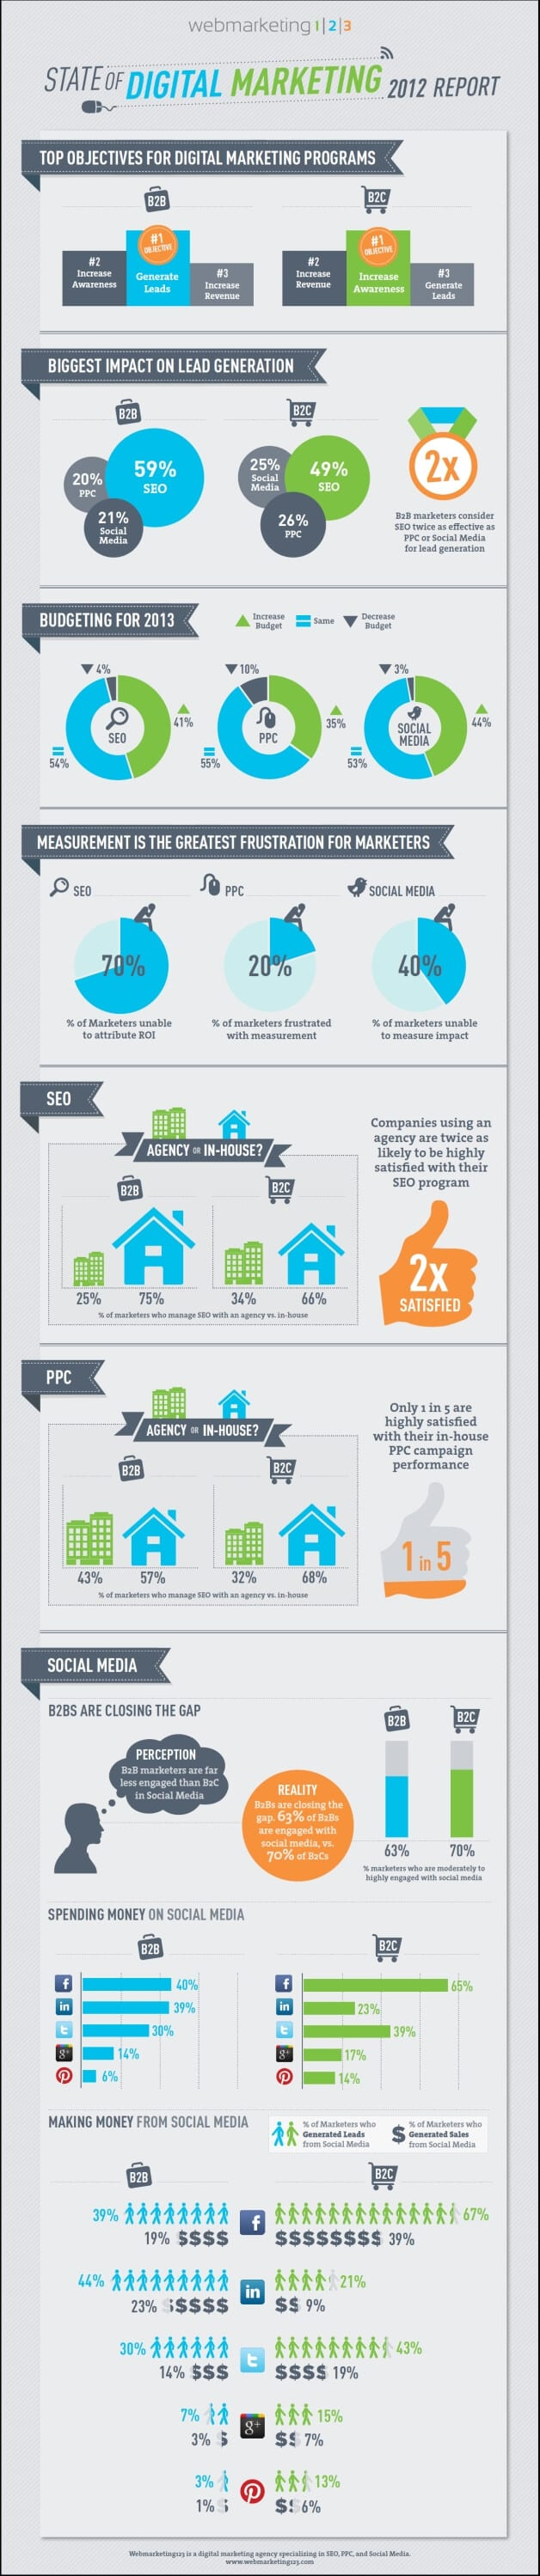 State of Digital Marketing 2012 Infographic